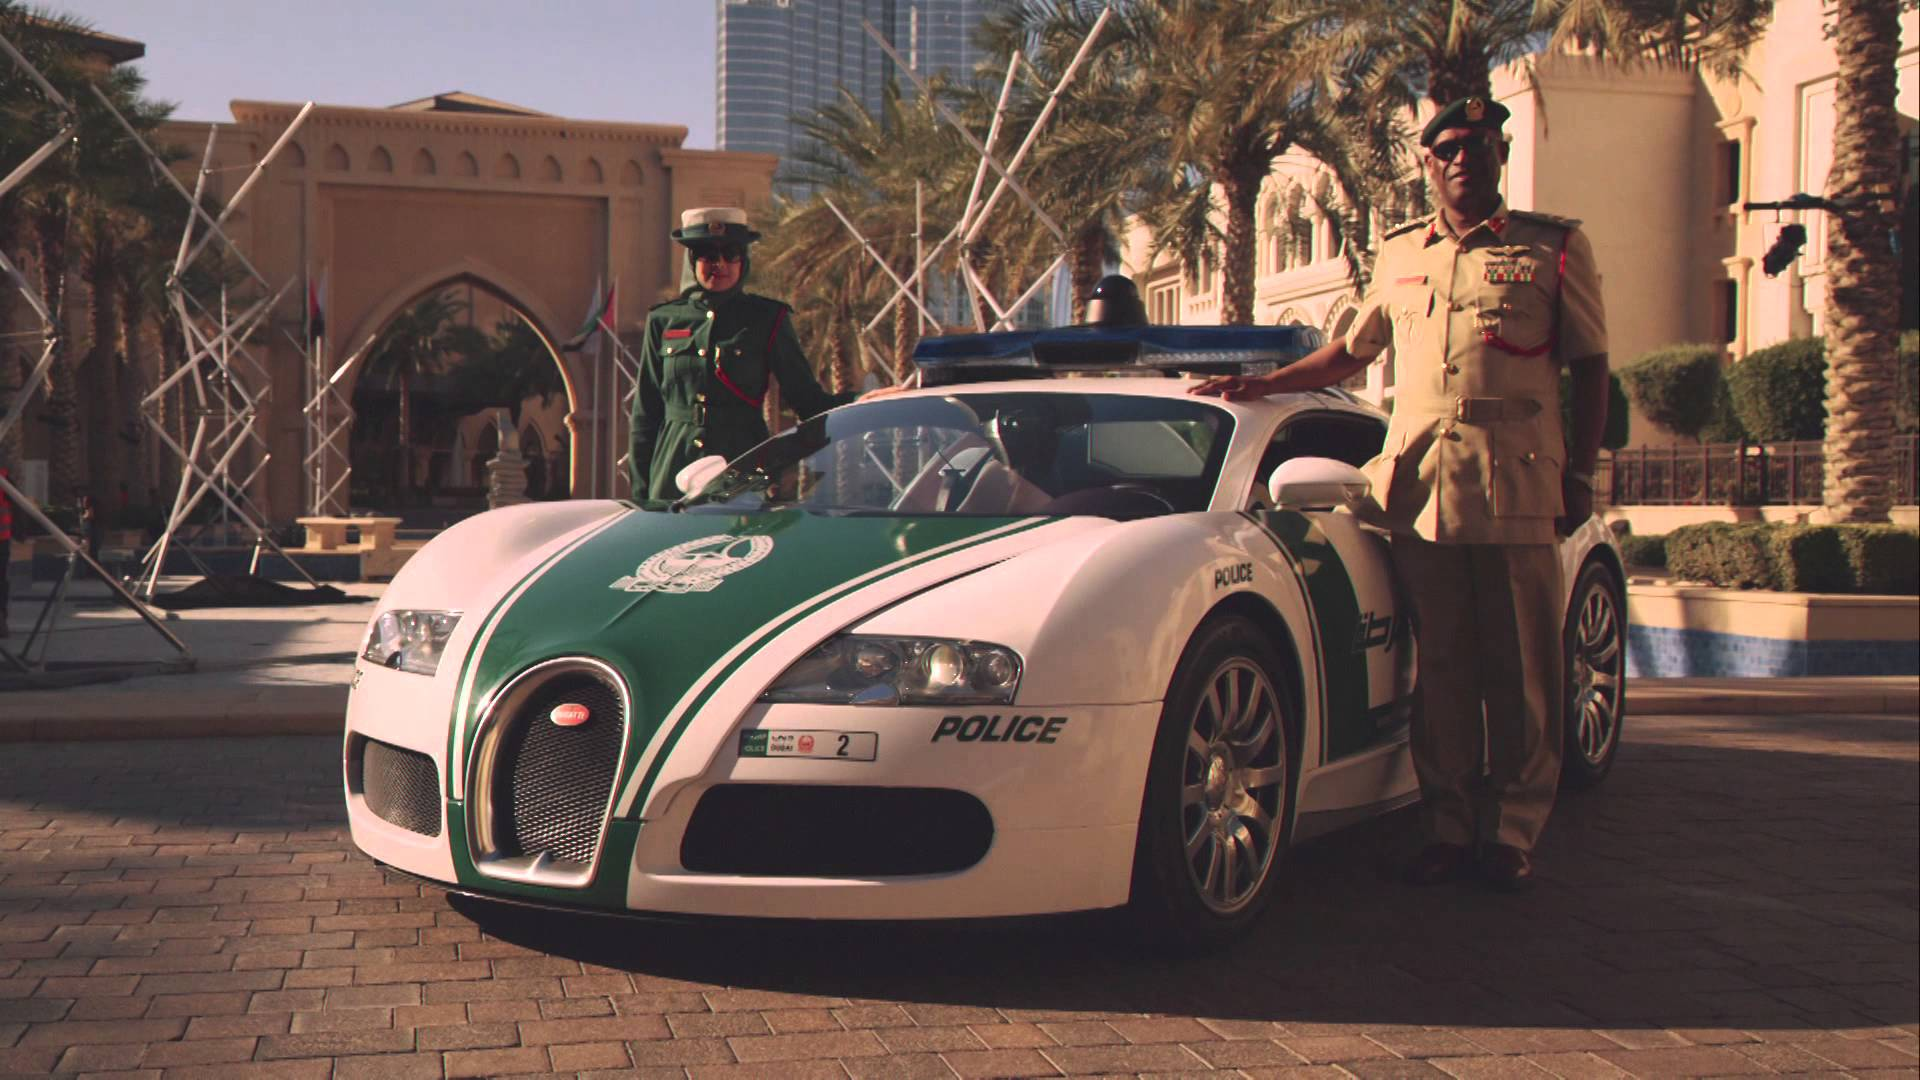 BugatiVeyron-DubaiPolice Cool Bugatti Veyron Price In Uae 2015 Cars Trend